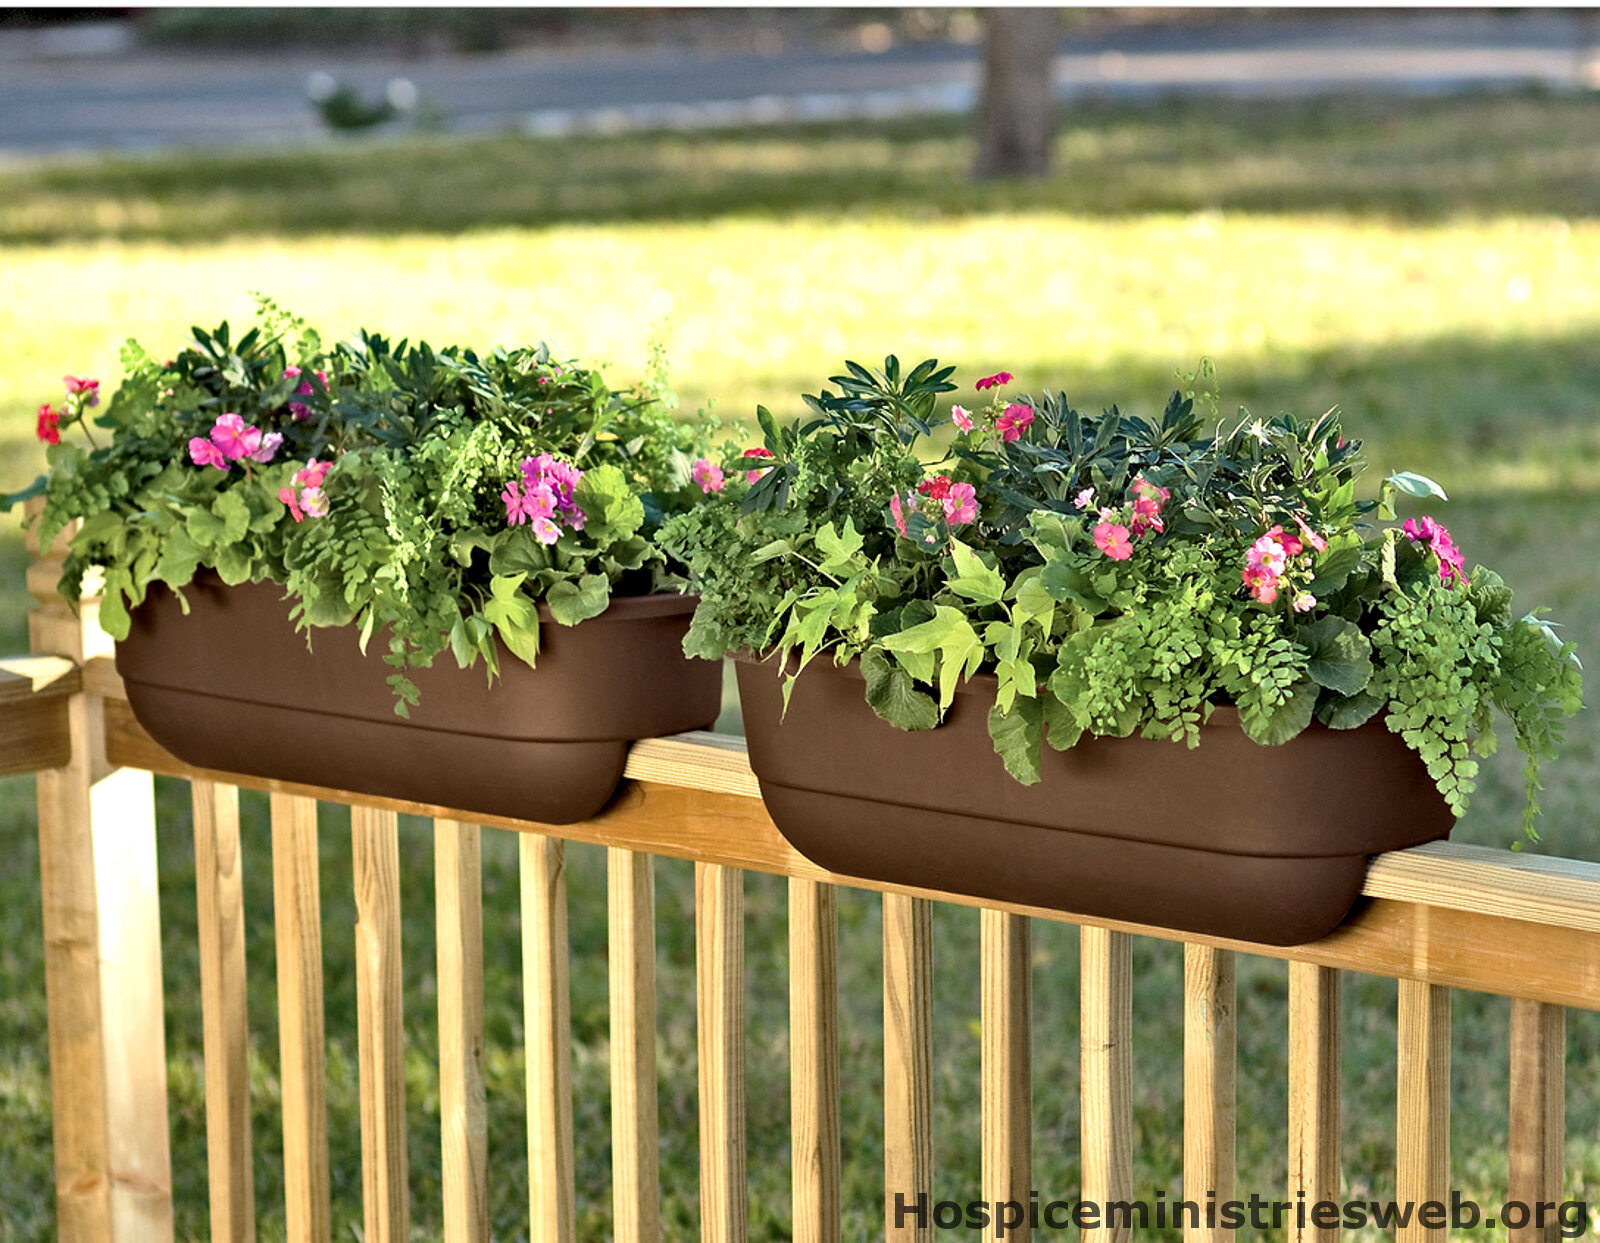 Deck Rail Planters | Flower Box Brackets for Vinyl Railing | Deck Planter Boxes Plans